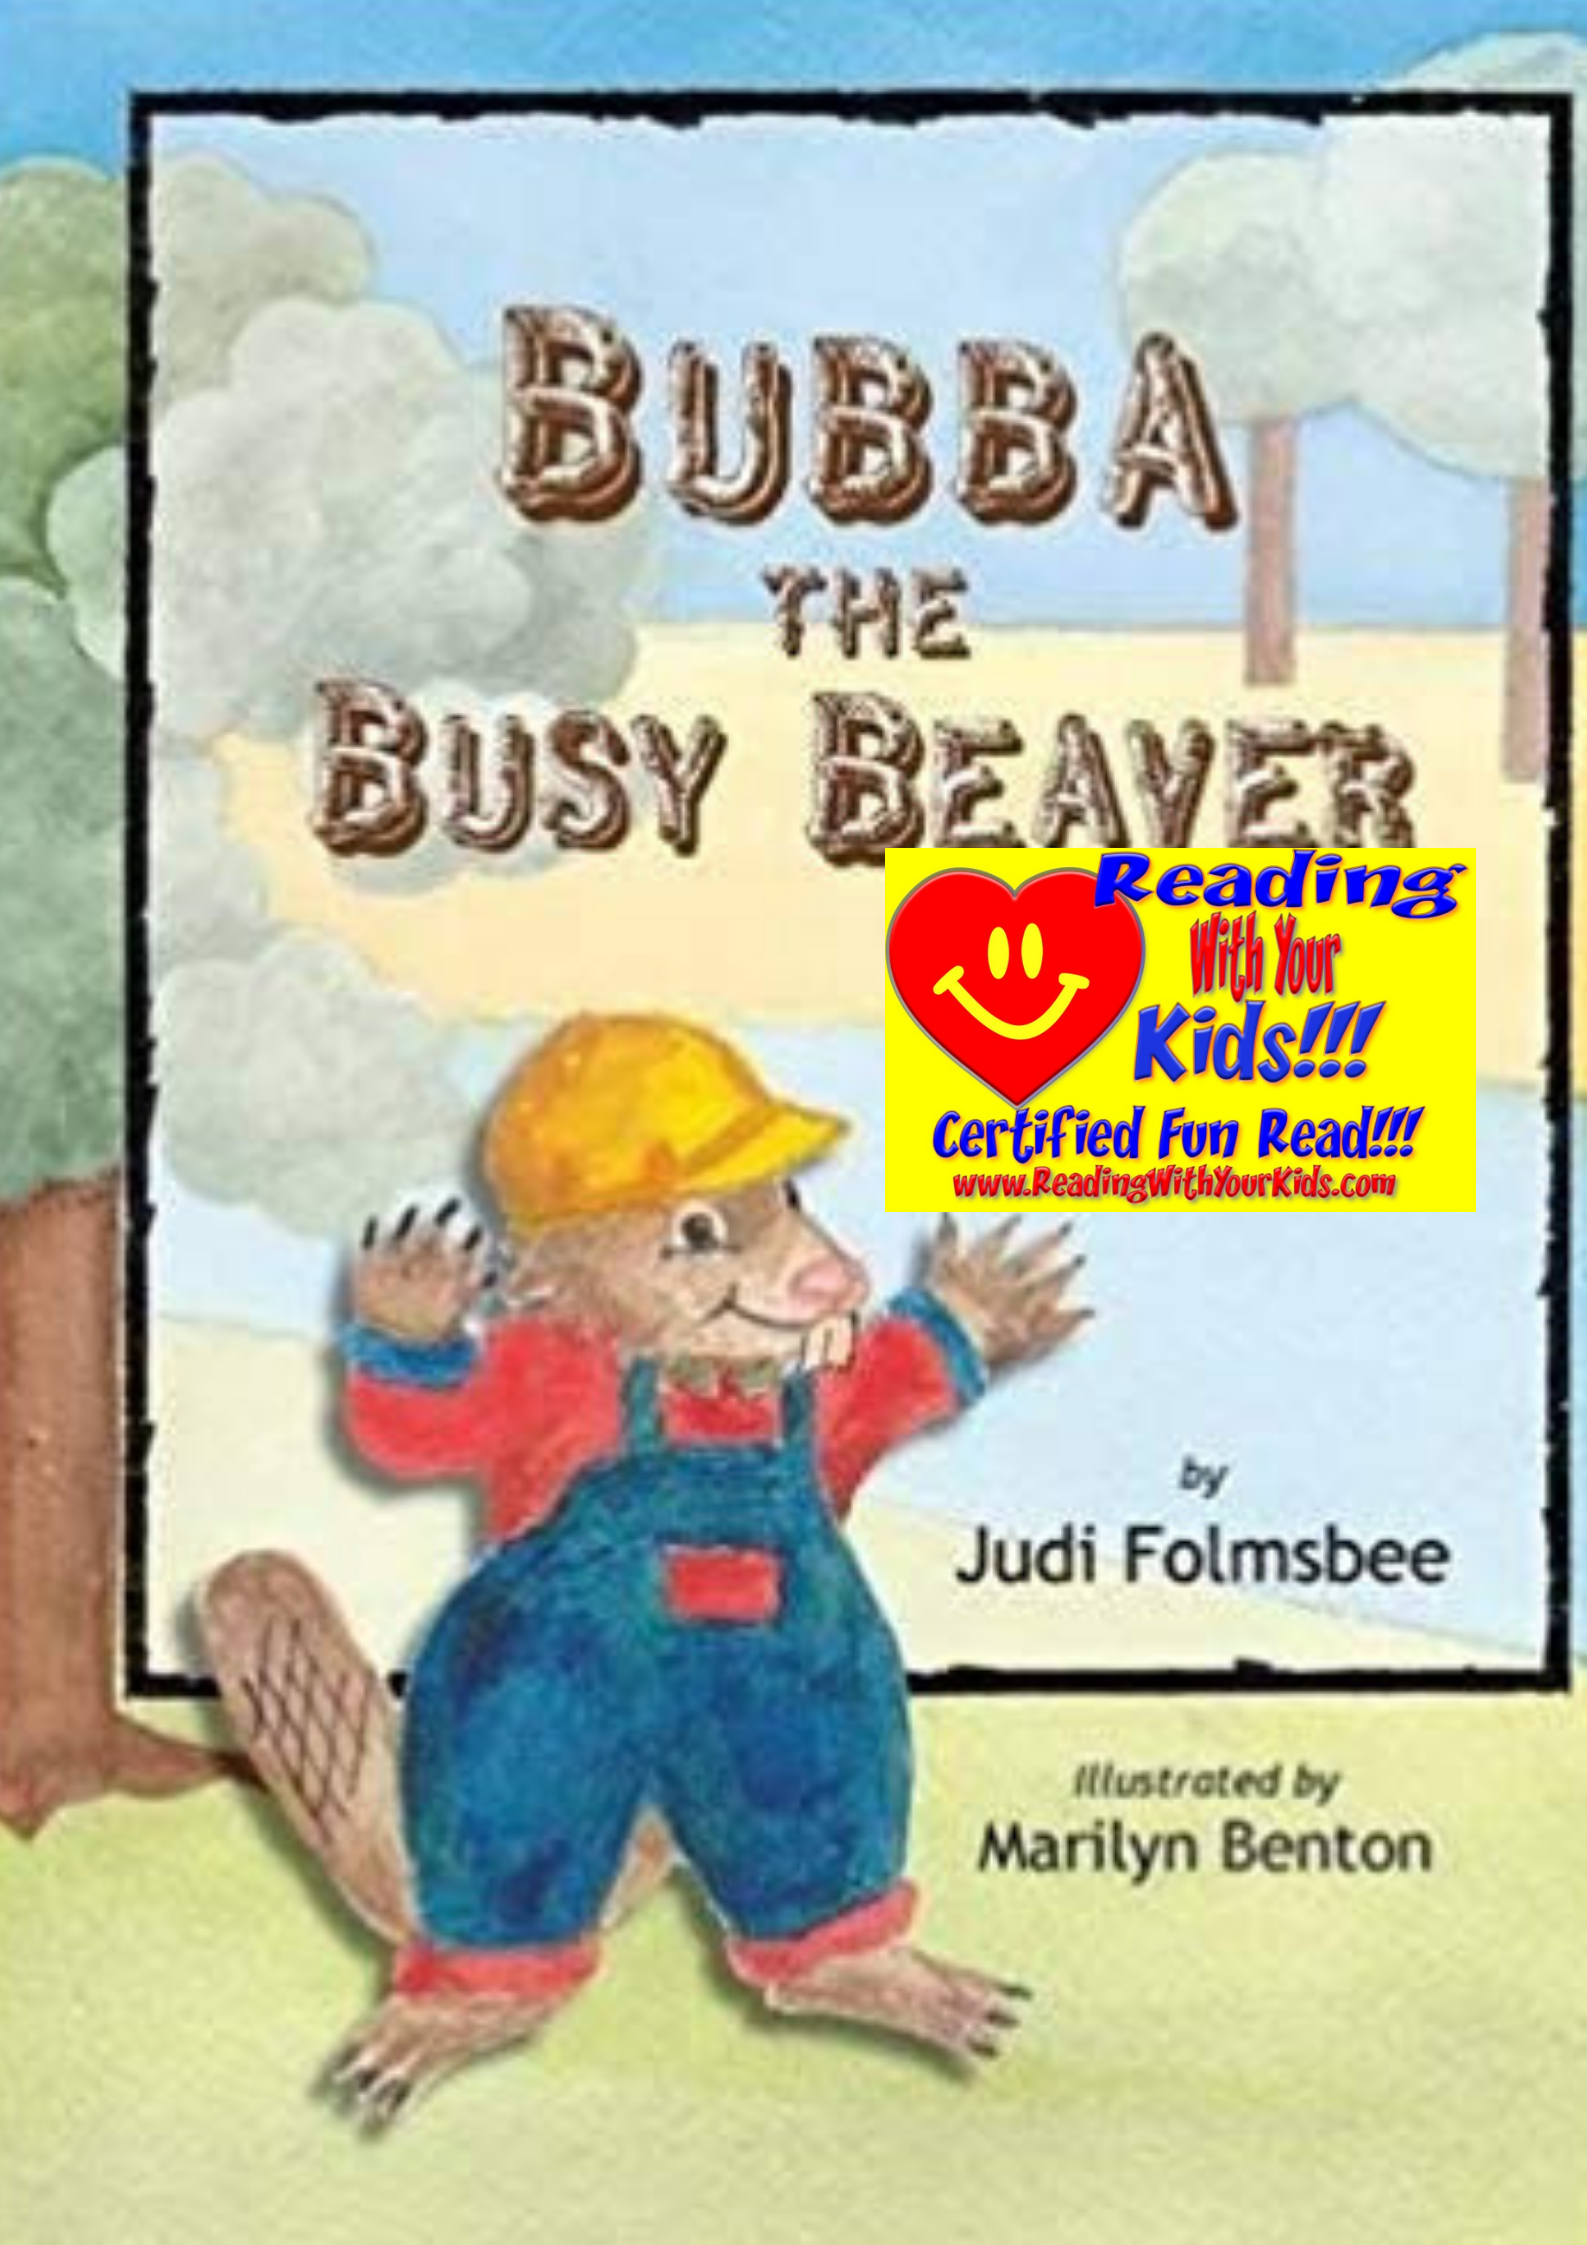 Bubba the Busy Beaver